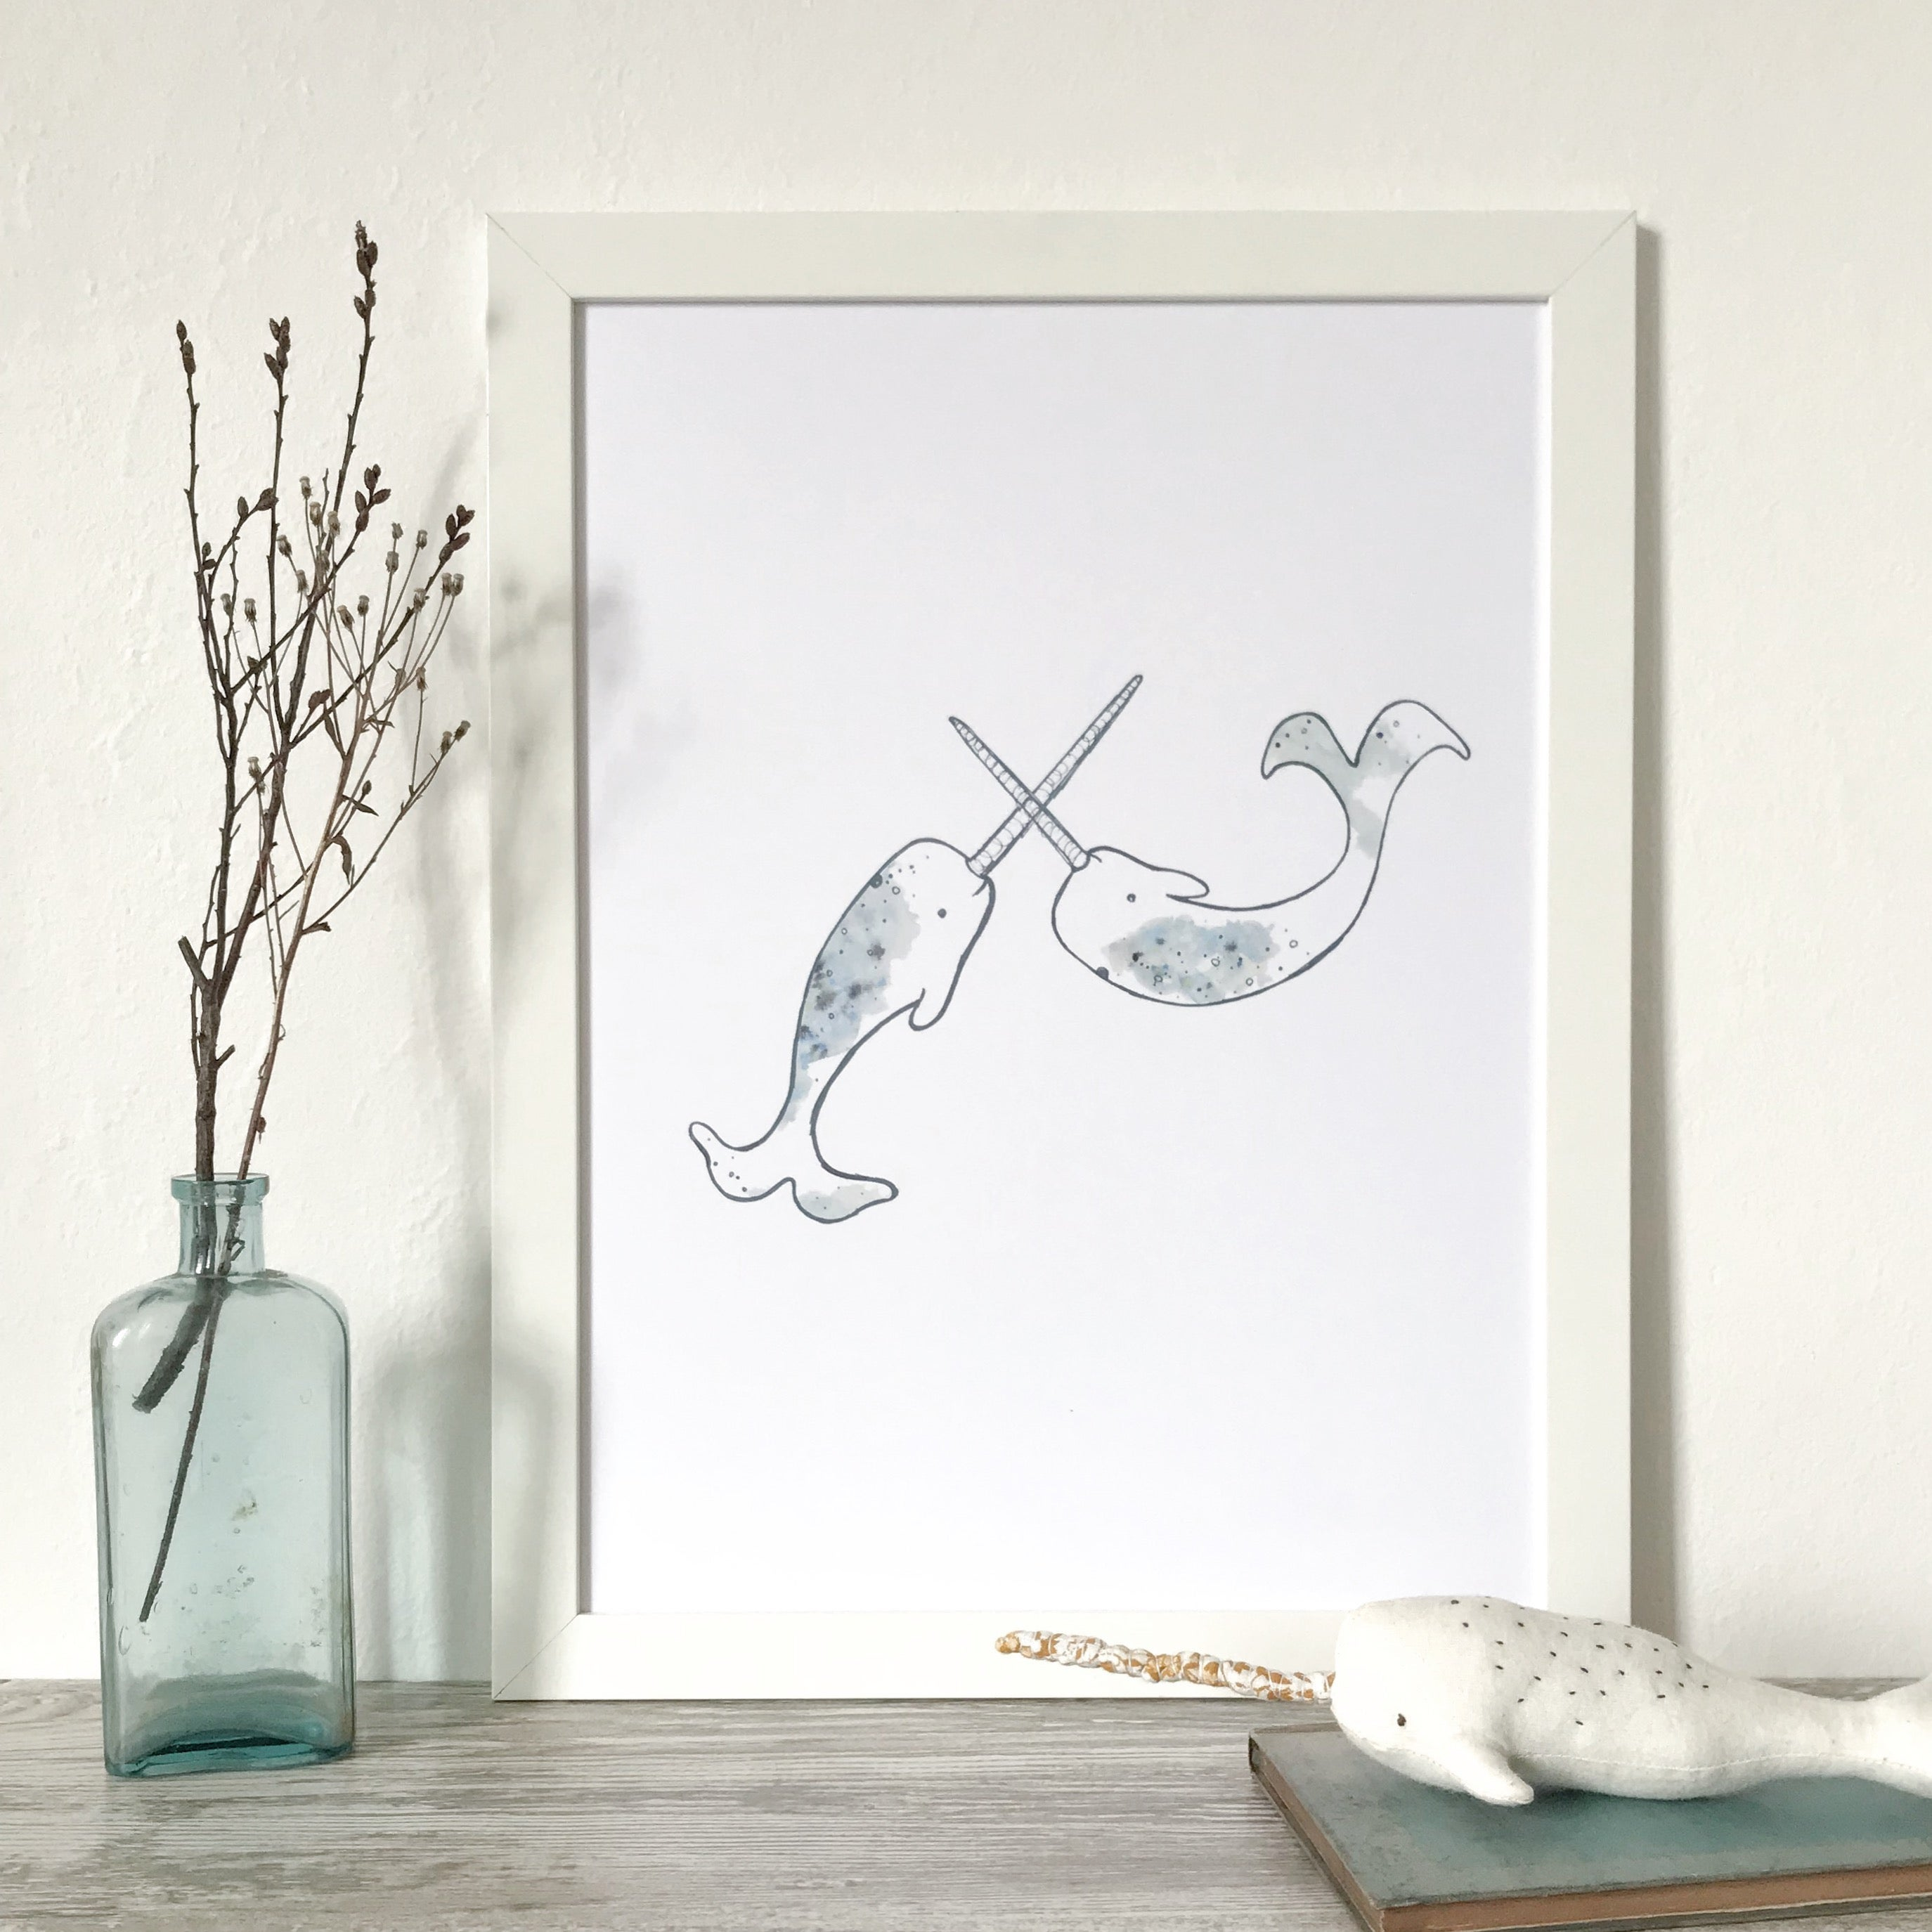 Whale Narwhal Image Of Narwhal Fun A3 Print Wooden Tree Narwhal Fun A3 Print Wooden Tree